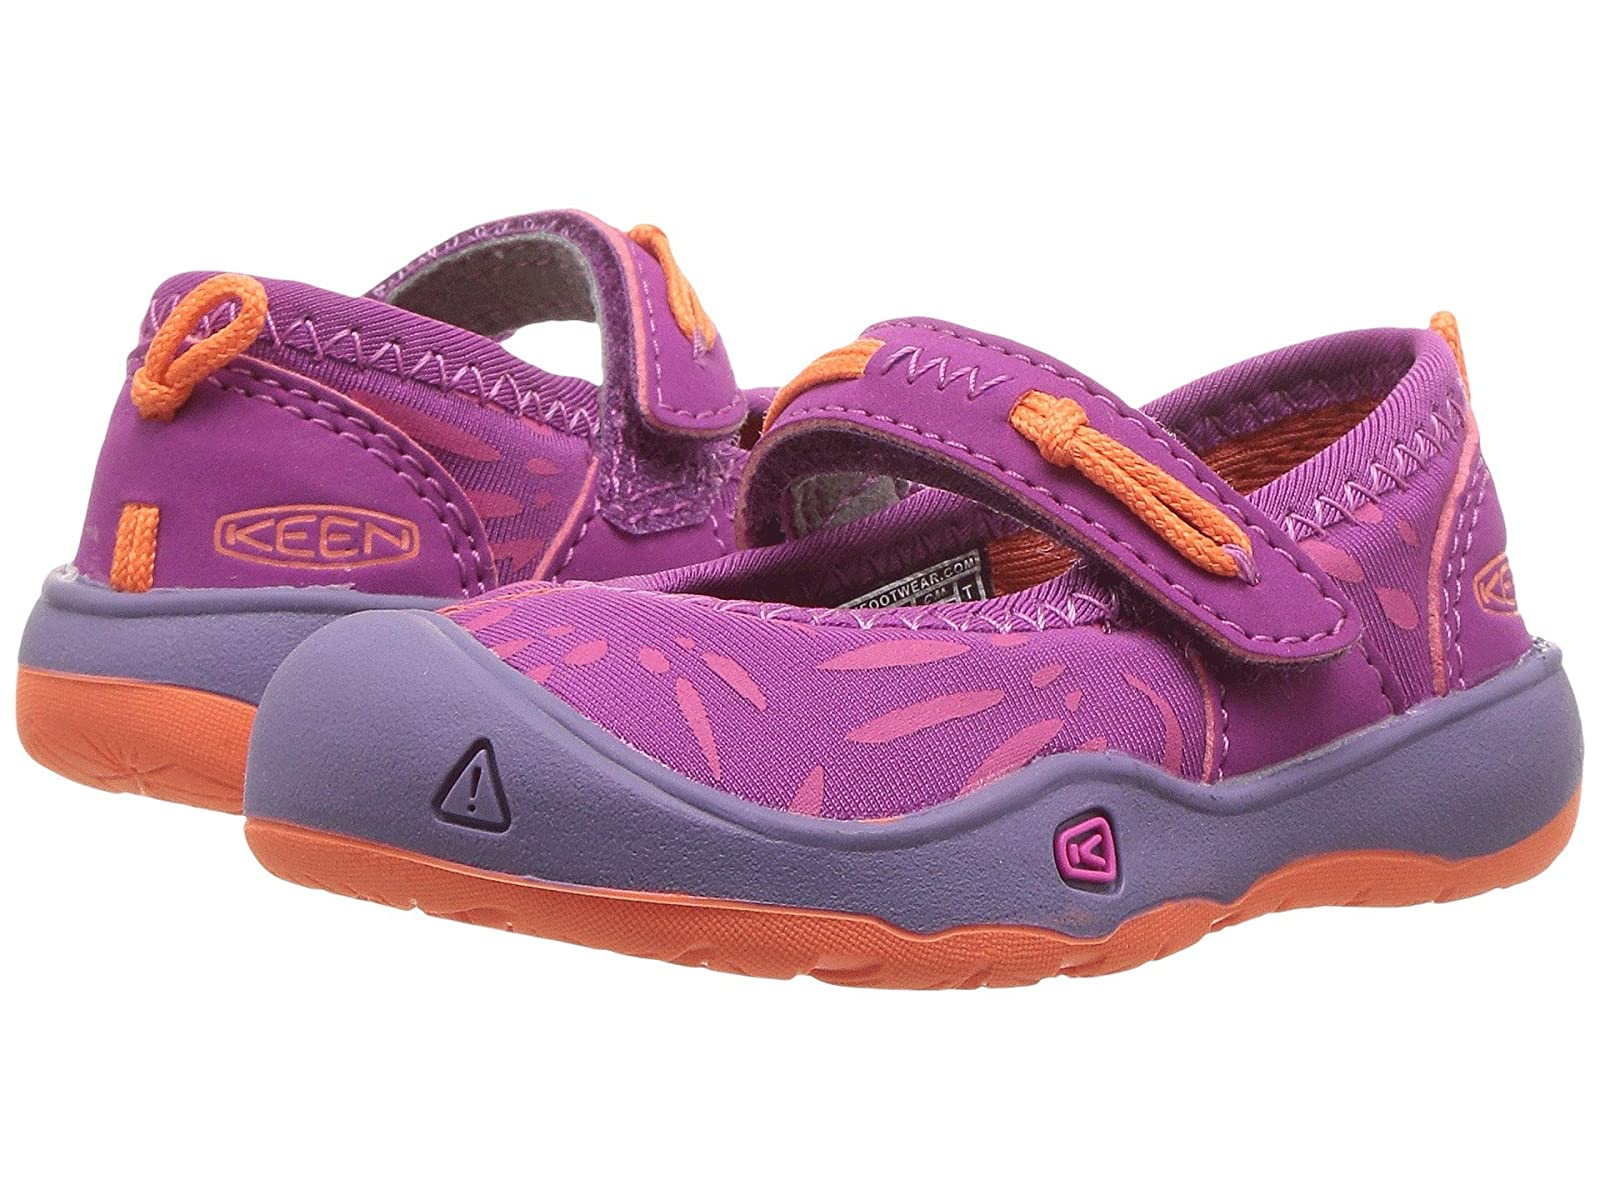 Keen Kids Moxie Mary Jane (Toddler)Cheap and distinctive eye-catching shoes